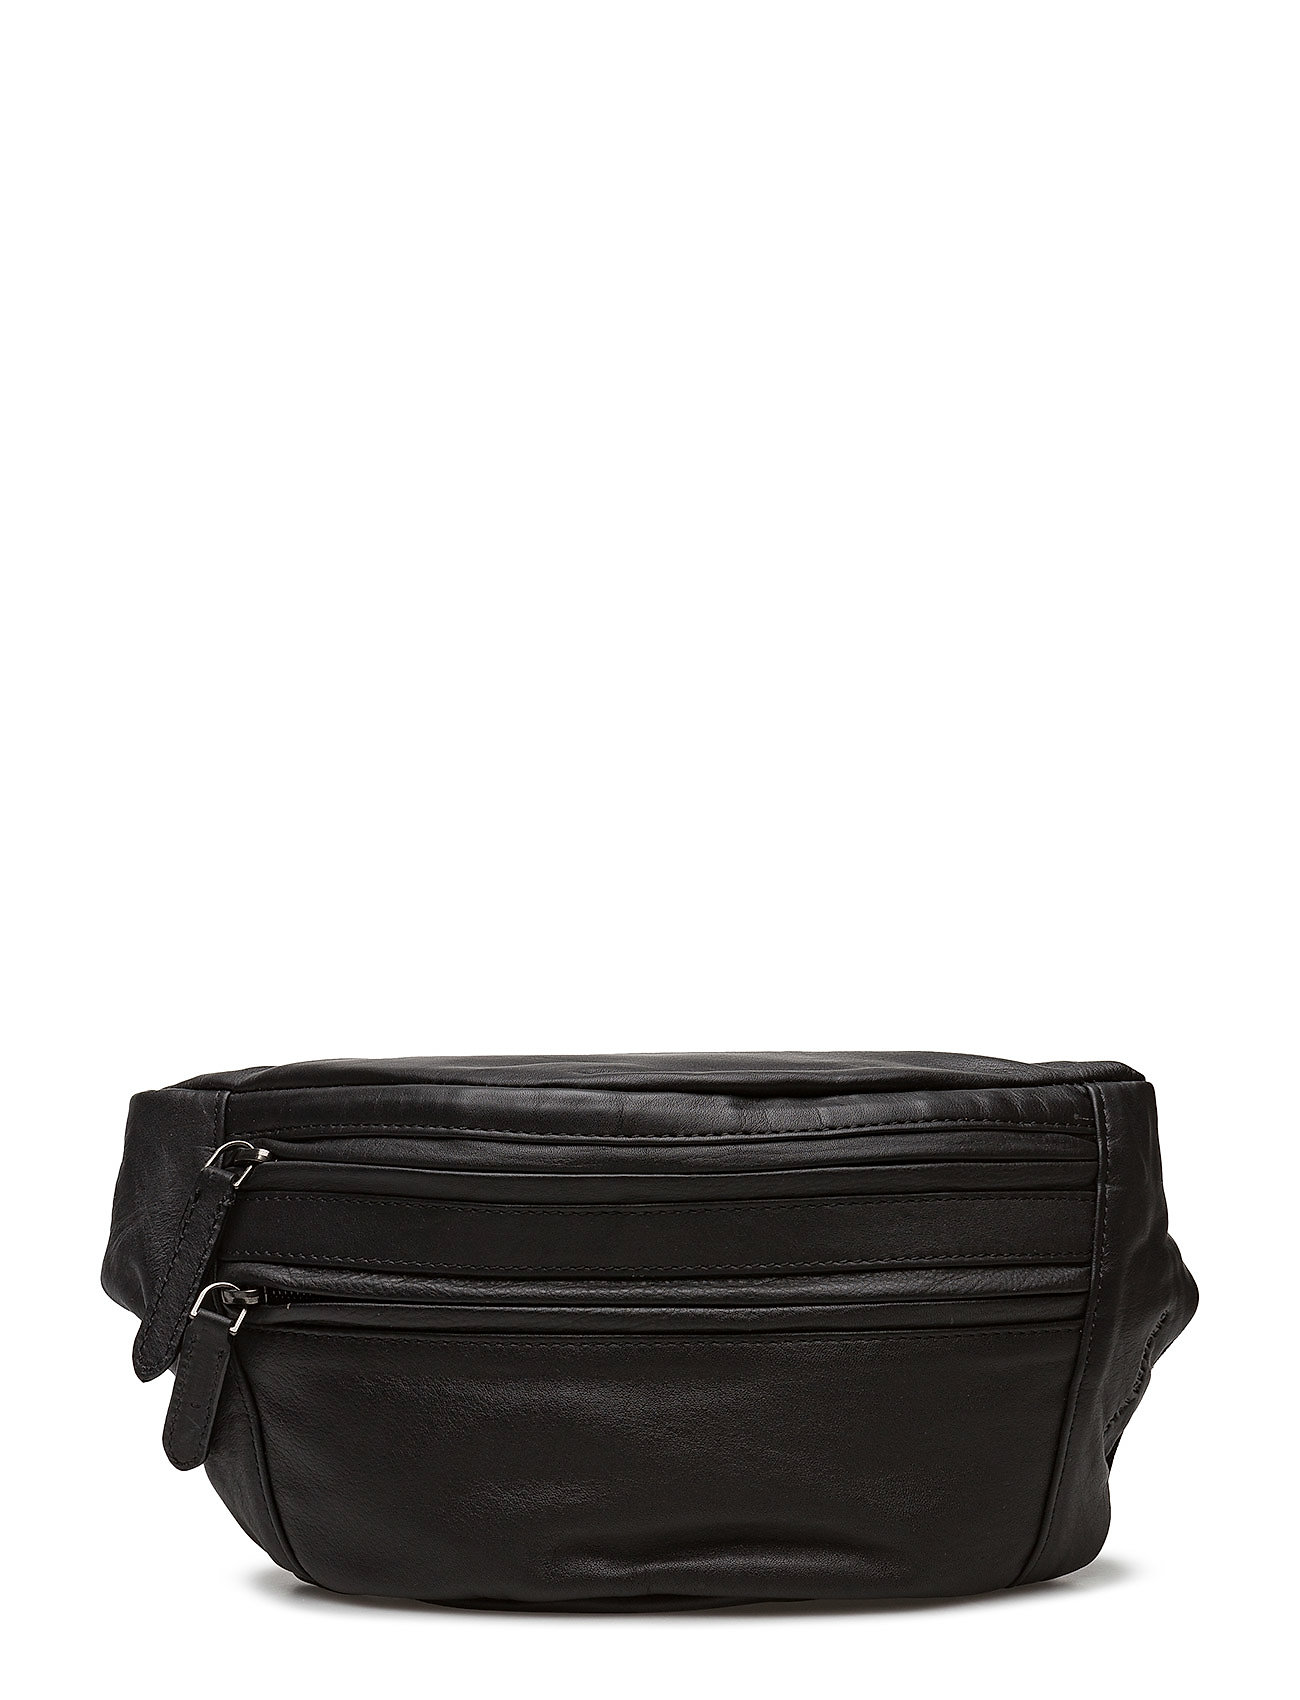 Royal RepubliQ FUNDAMENTAL BUM BAG - BLACK